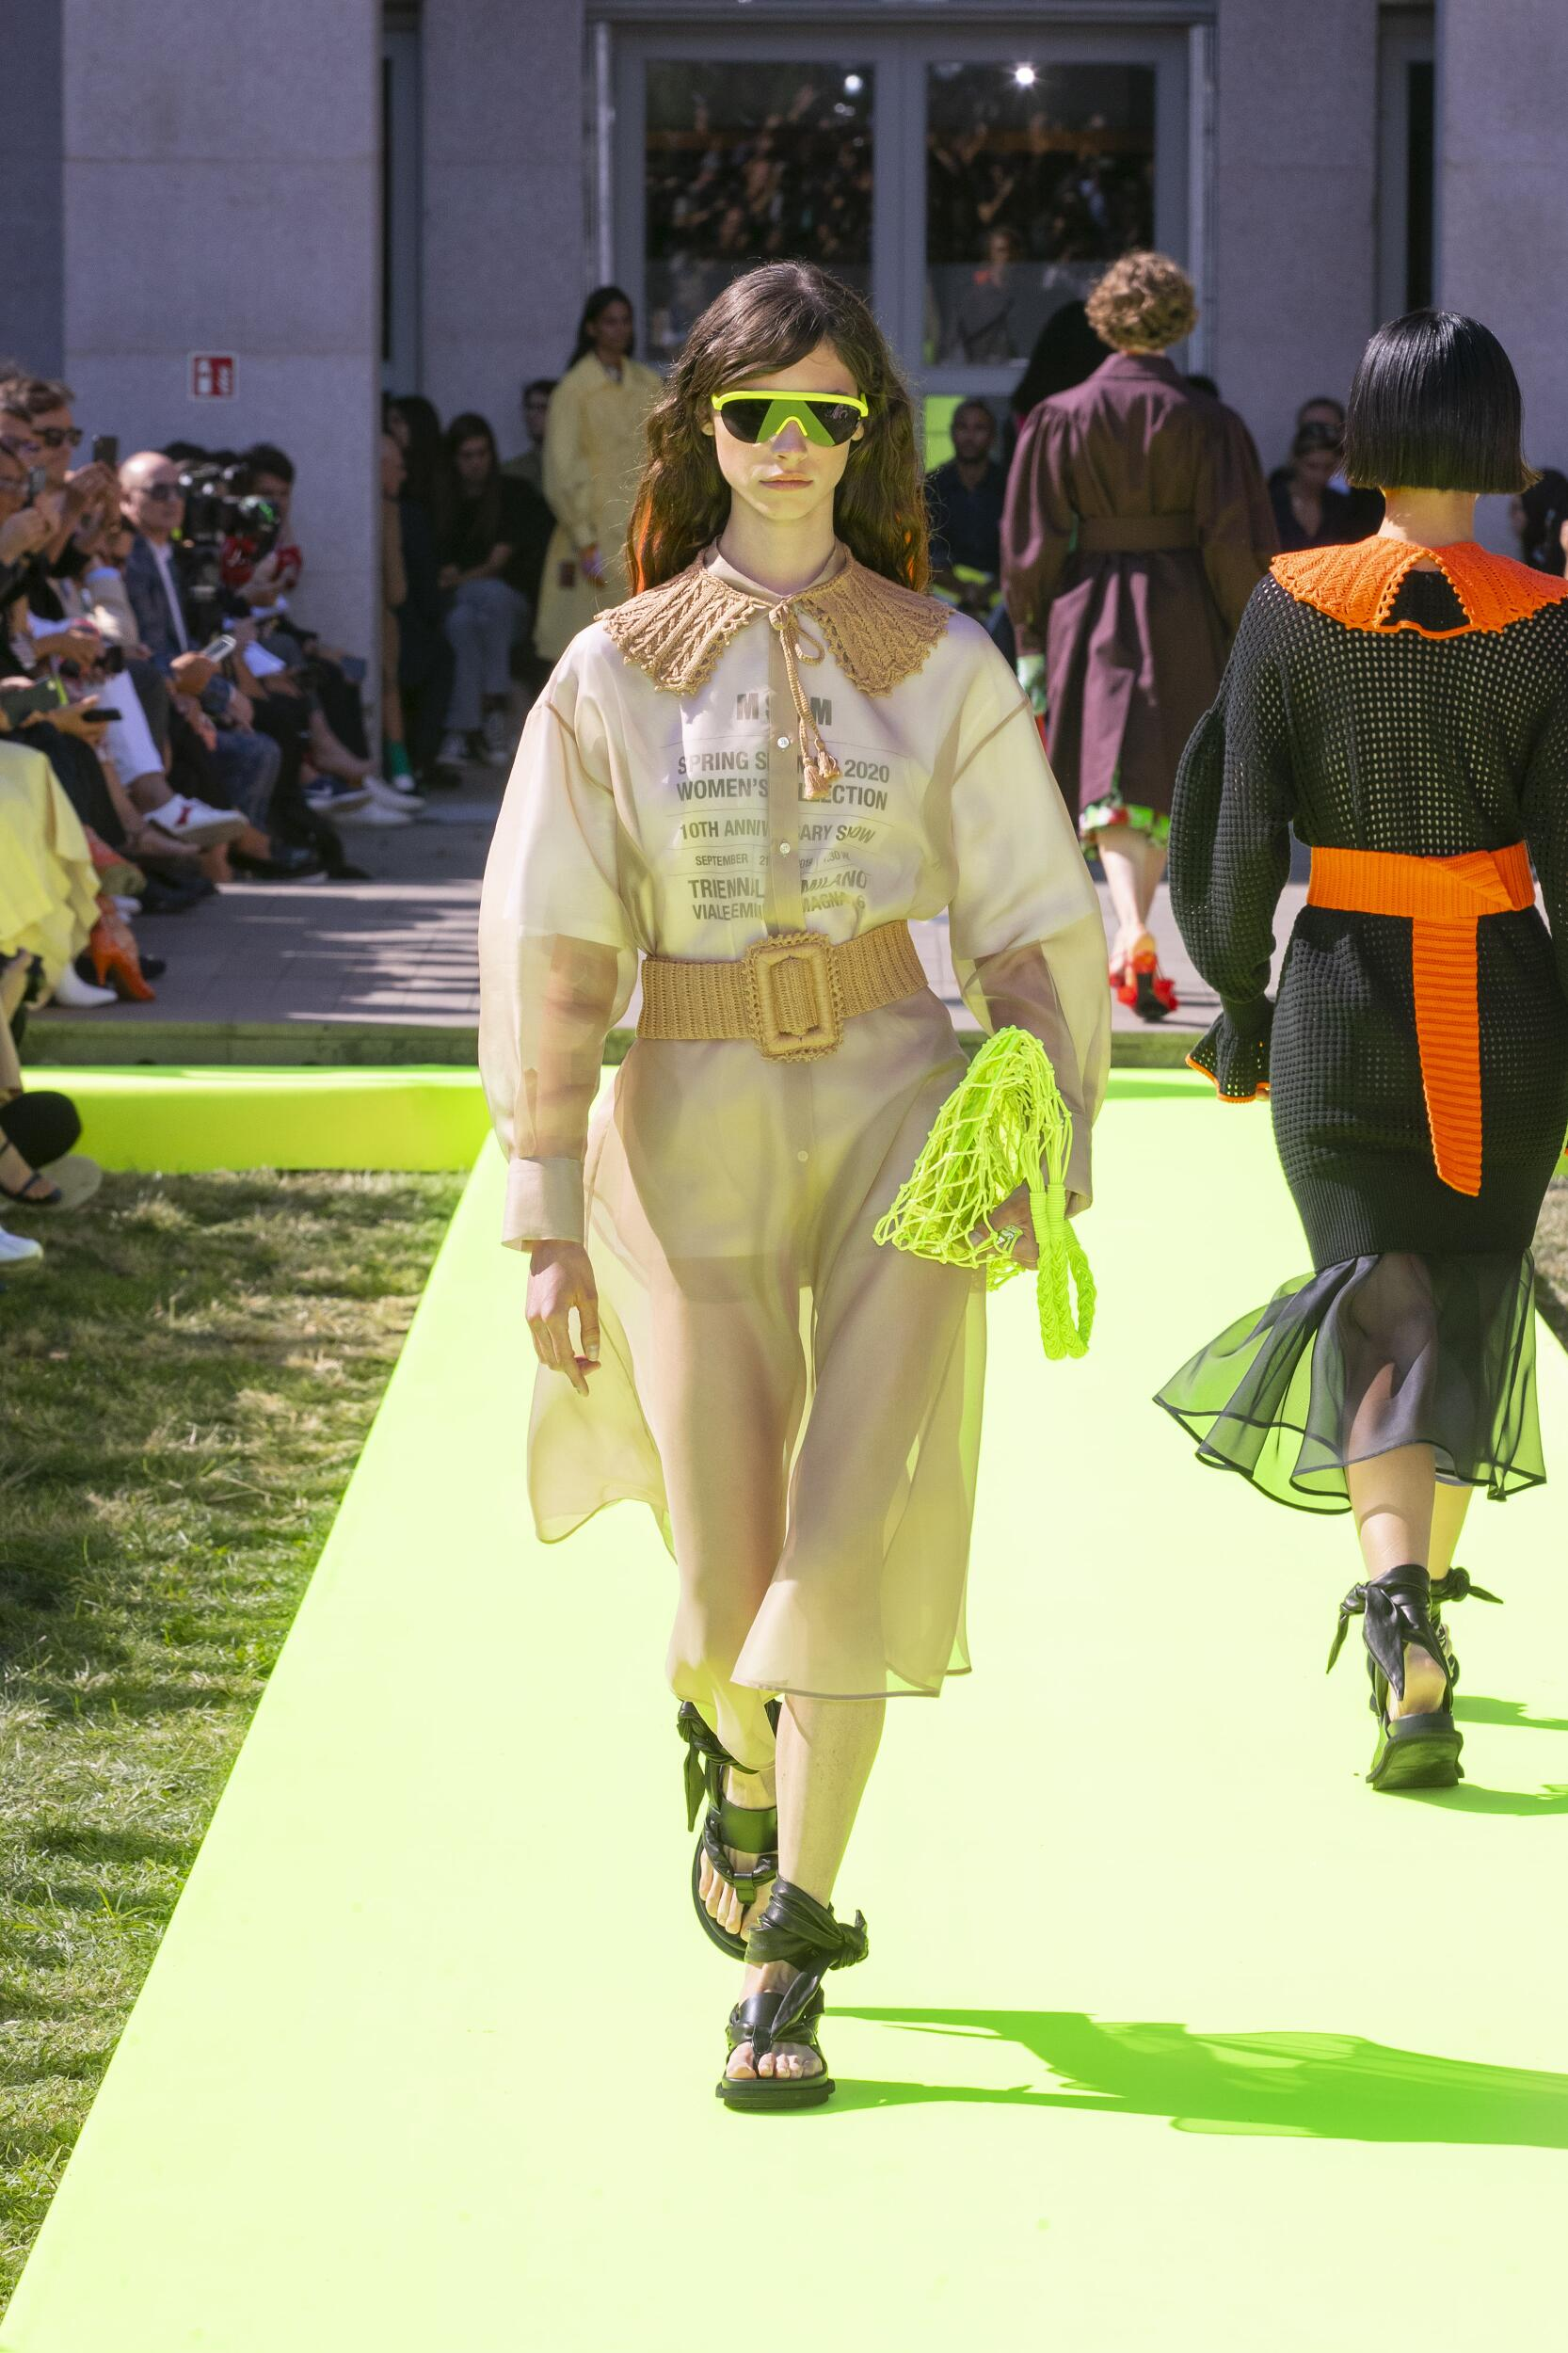 Msgm Spring Summer 2020 Collection Milan Fashion Week